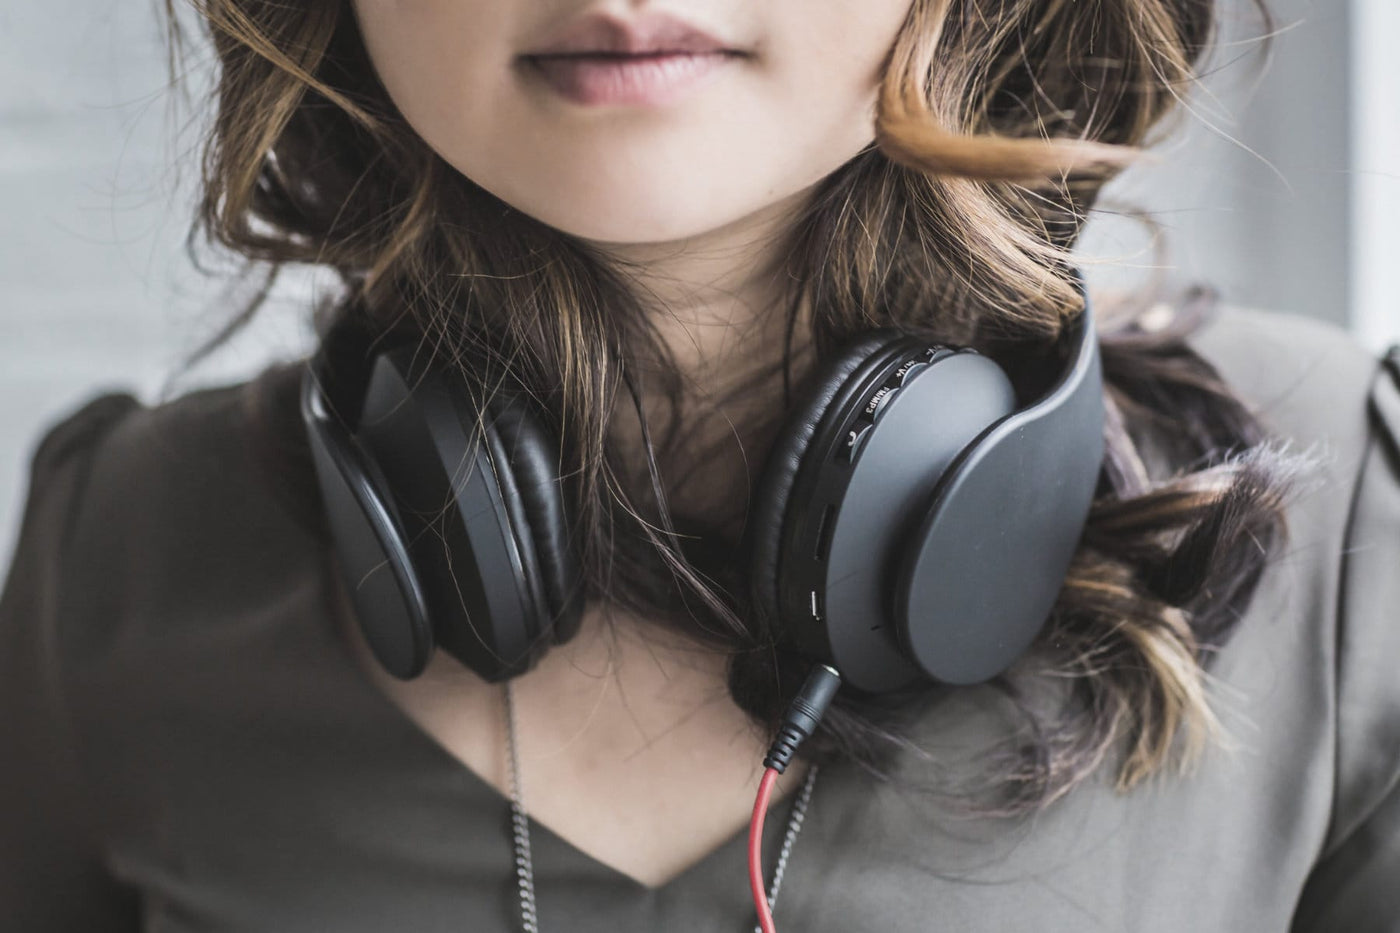 Young woman wearing headphones around her neck